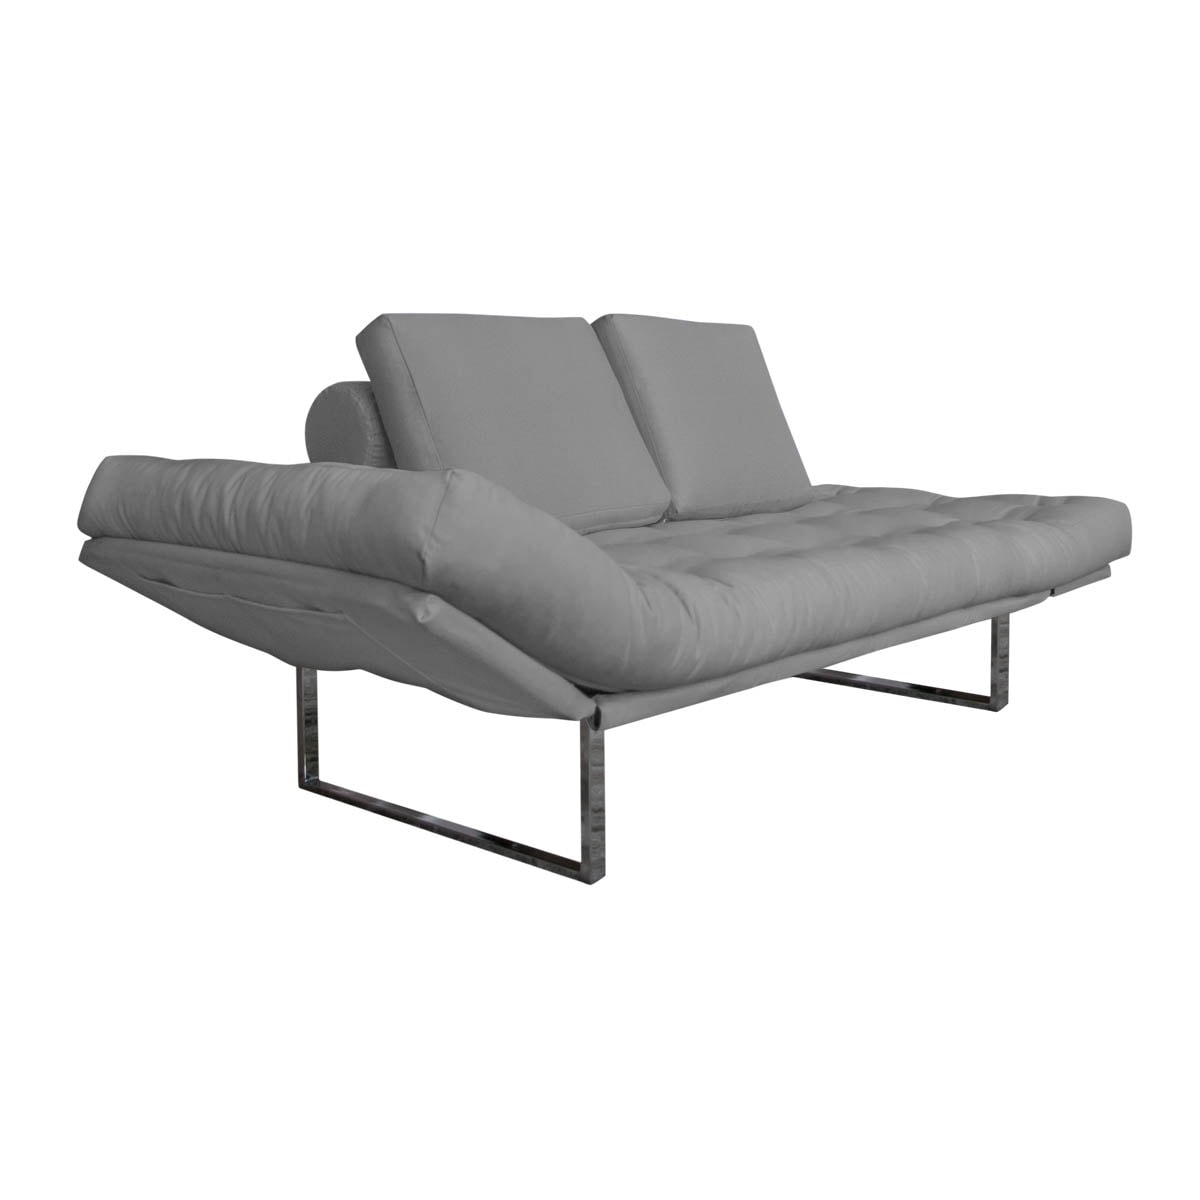 Sofa cama individual futon company for Sofa cama de pared